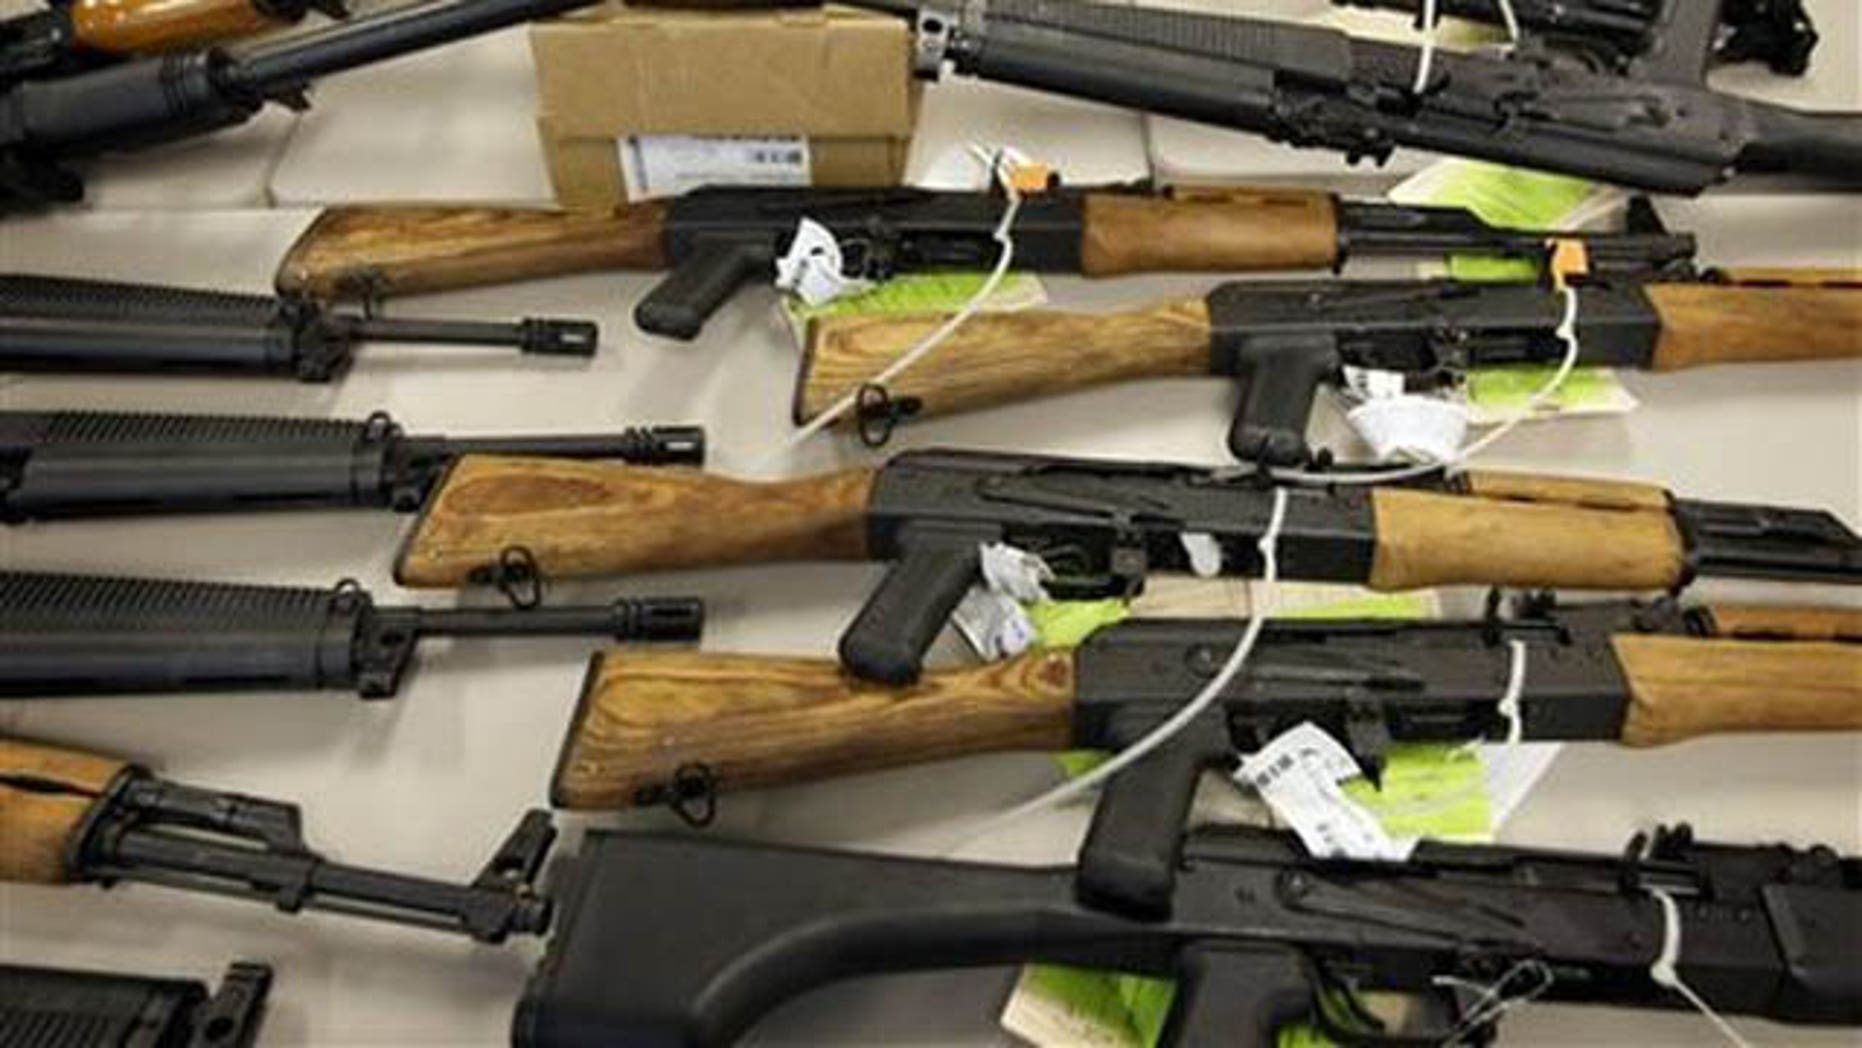 A Florida business hopes a gun giveaway can add some firepower to its sales.